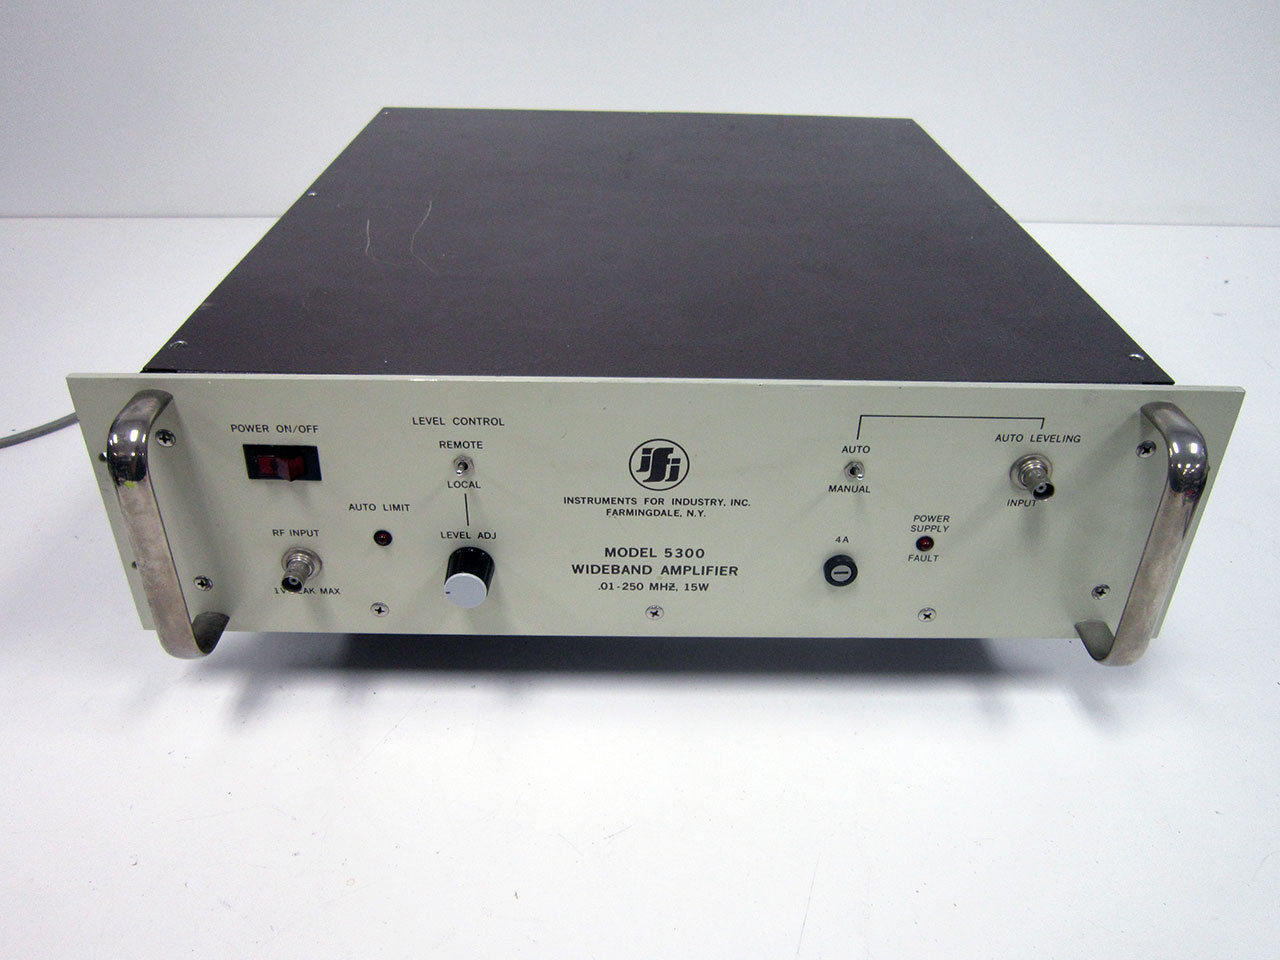 ifi-m5300-amplifier-10-khz-to-250-mhz-15-watts-5300-instruments-for-industry-for-sale-used-equipment-0.jpg